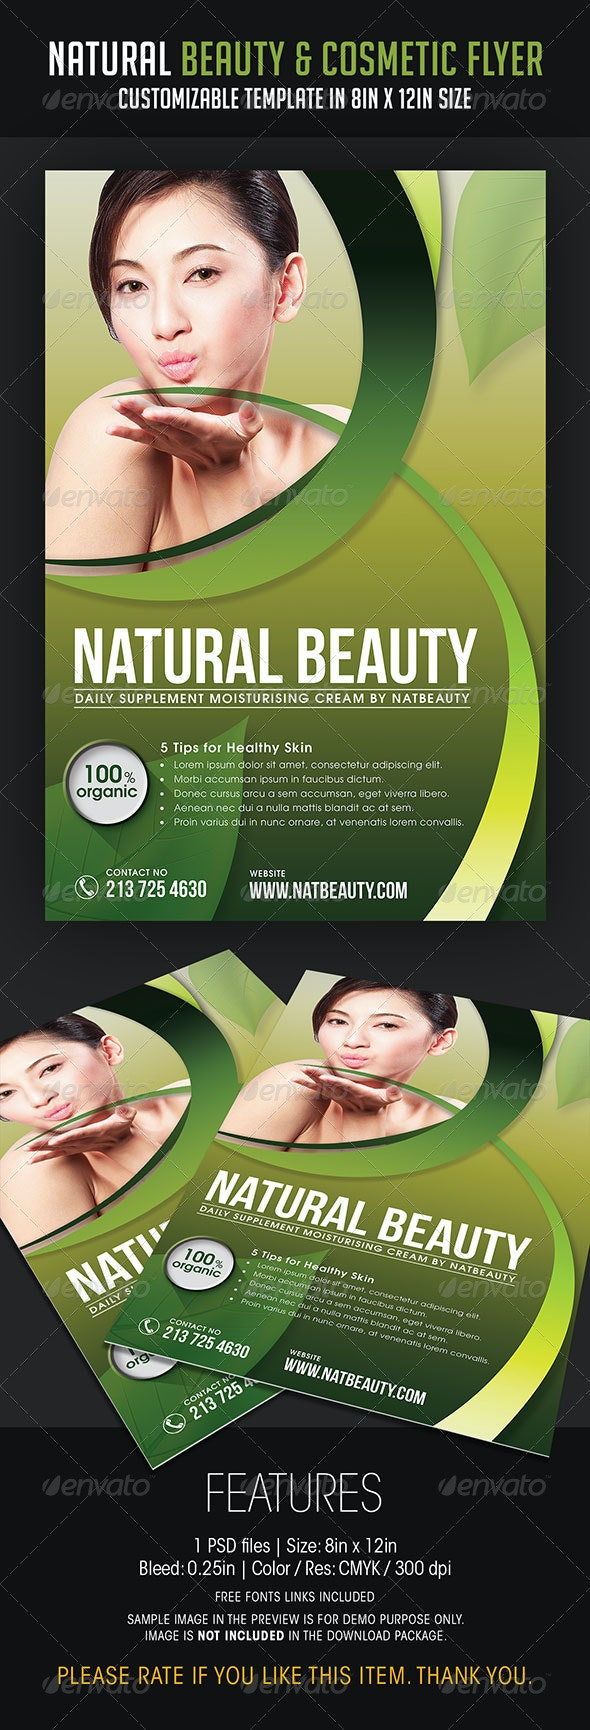 Natural Beauty and Cosmetic Flyer - Commerce Flyers